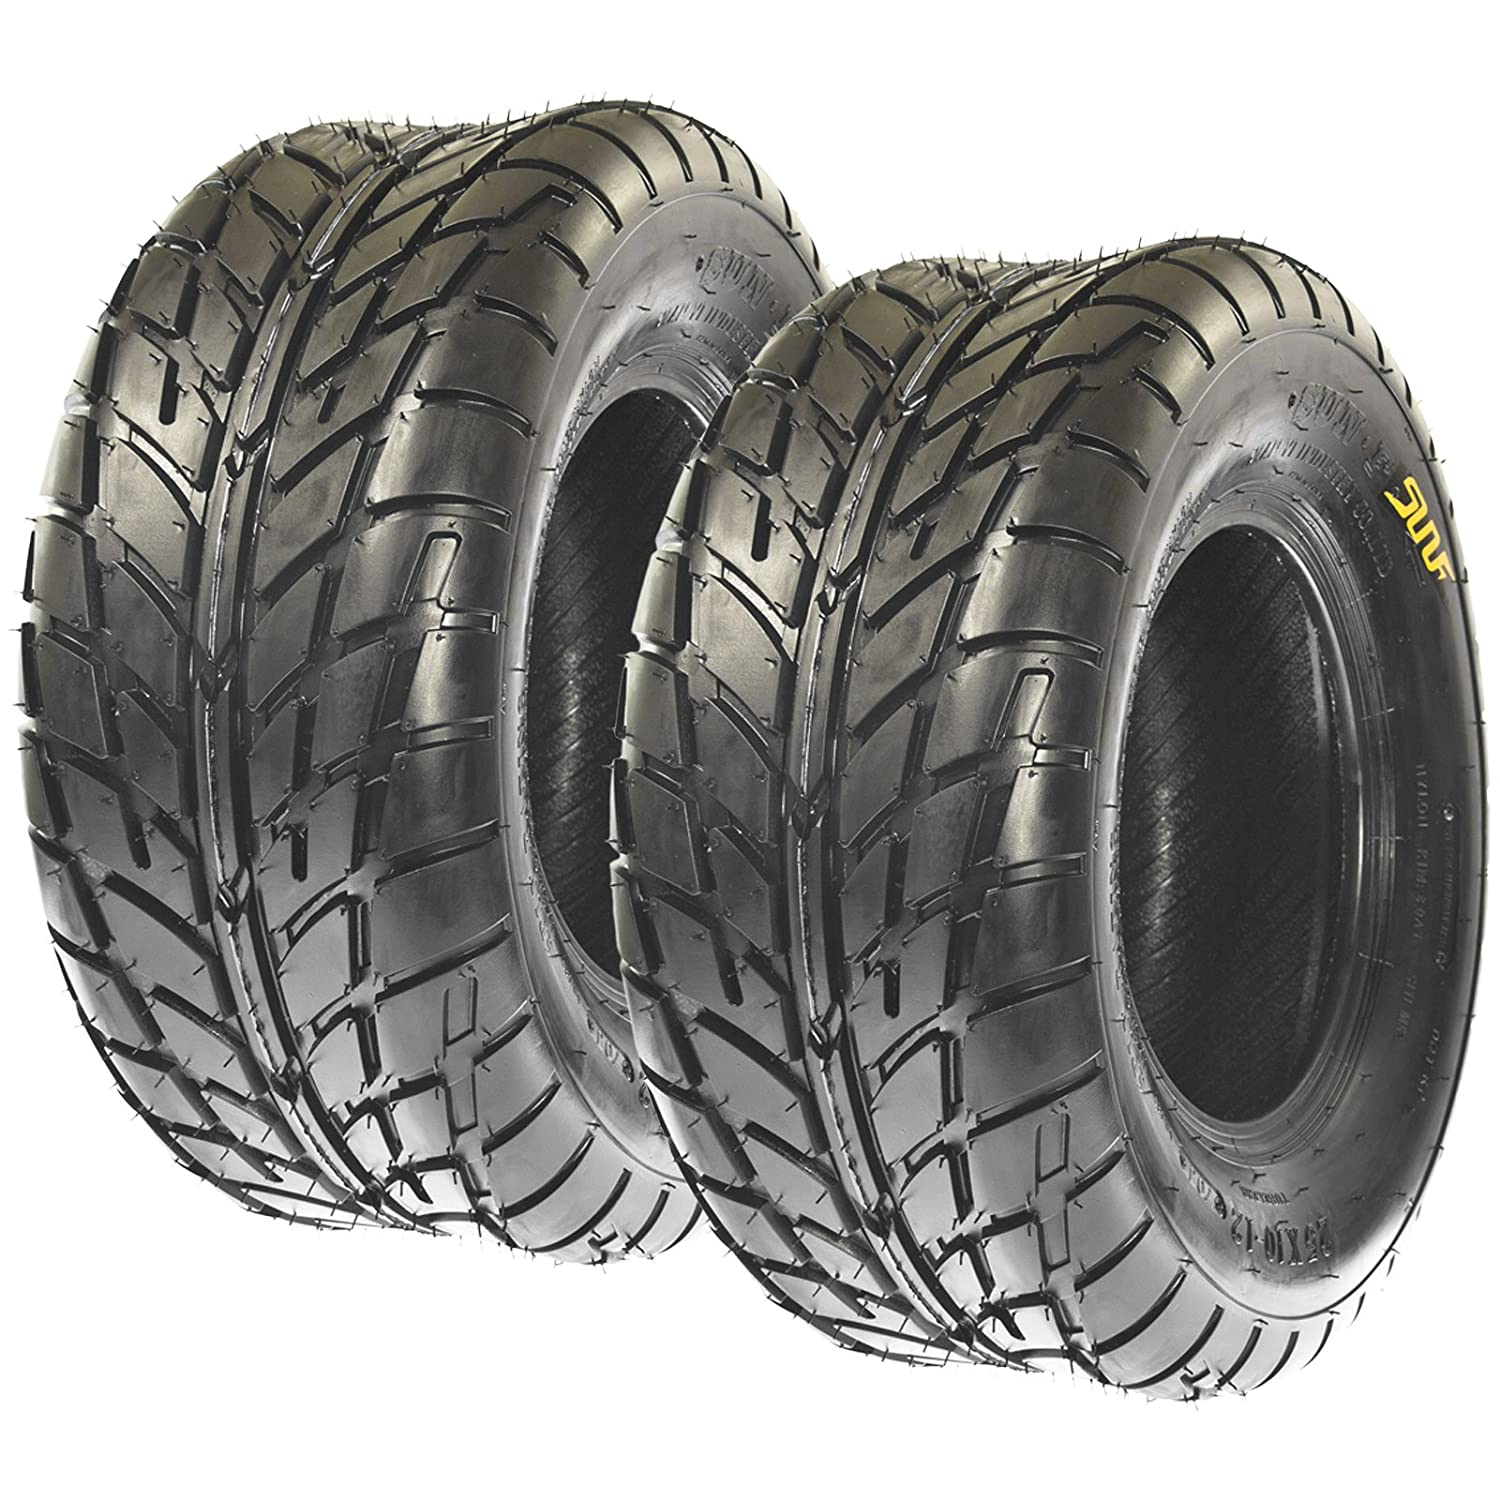 Pair of 2 SunF A021 TT Sport ATV UTV Dirt & Flat Track Tires 19x7-8, 6 PR, Tubeless